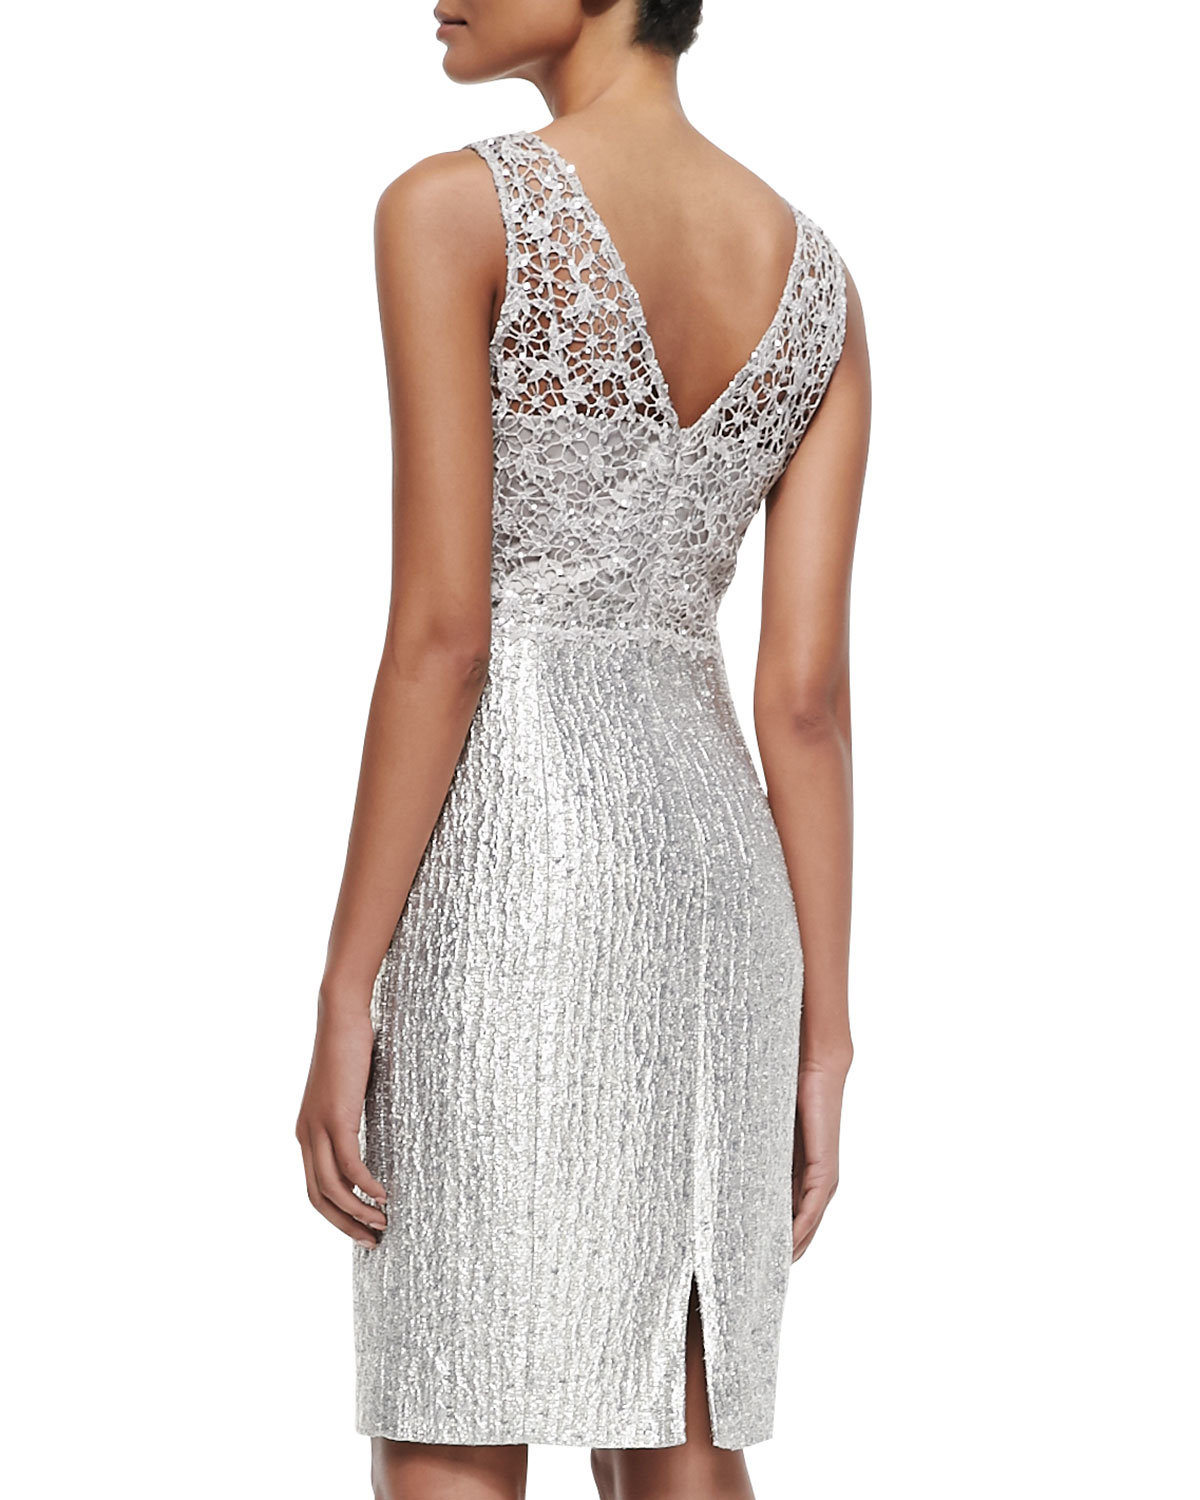 Lyst - Kay Unger Sequined Lace Bodice Cocktail Dress in Metallic